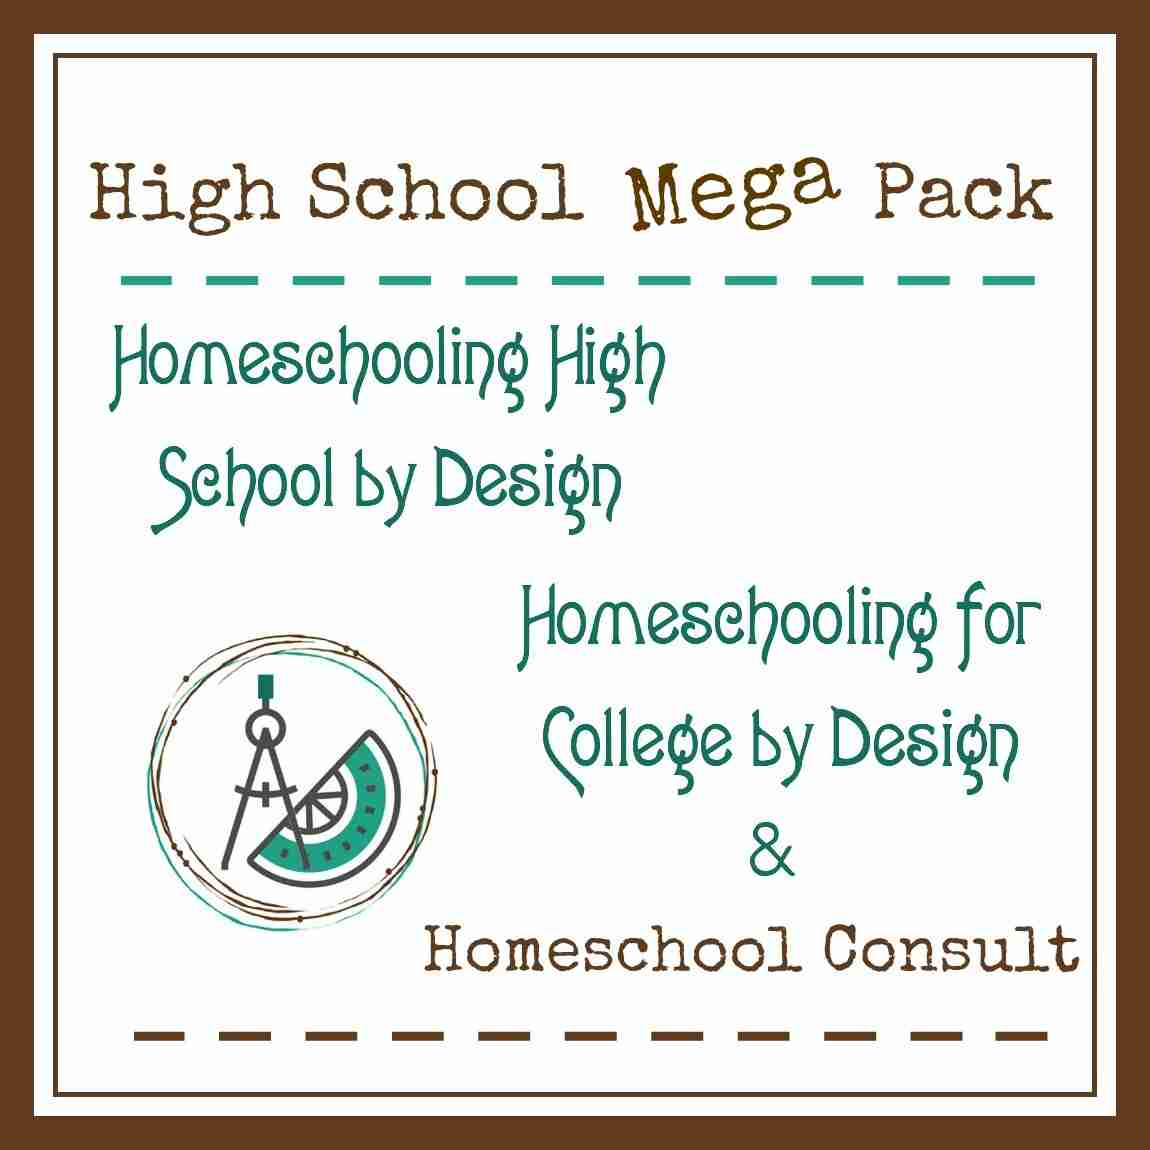 High School Mega Pack